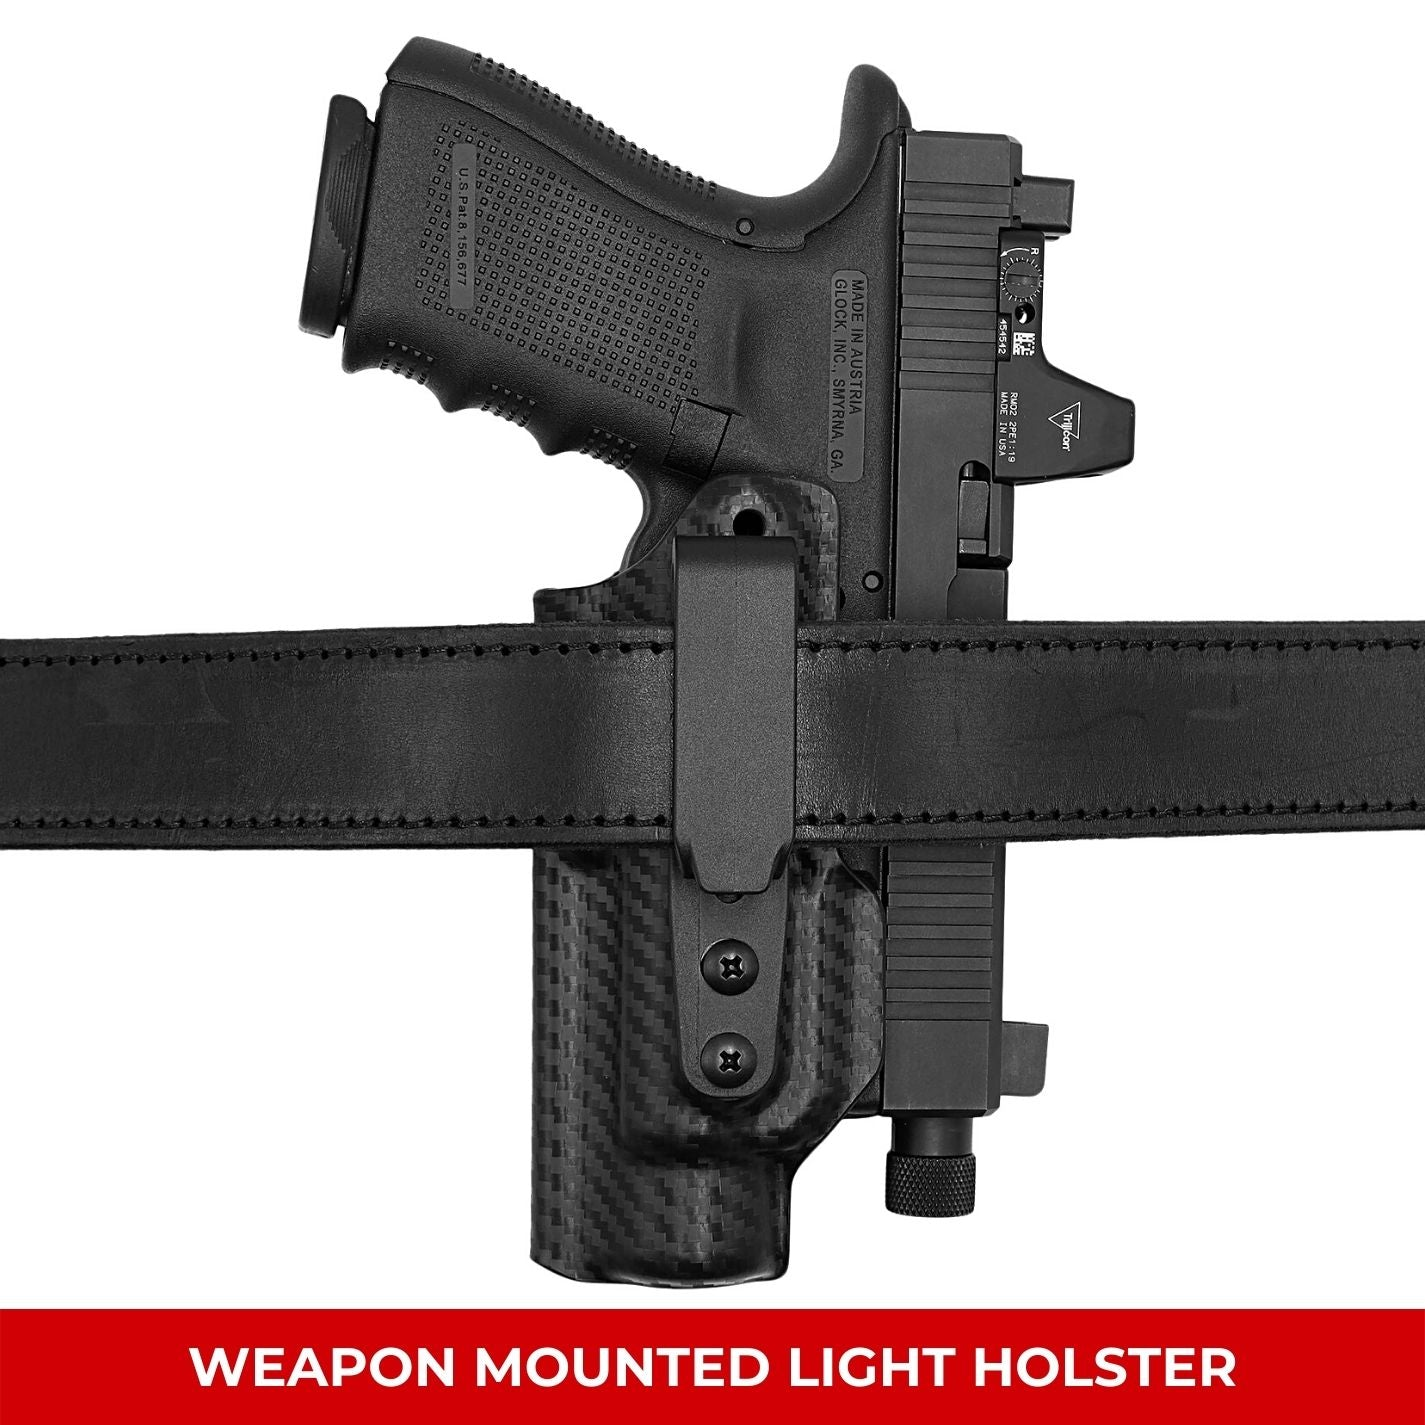 Weapon Mounted Light Holsters